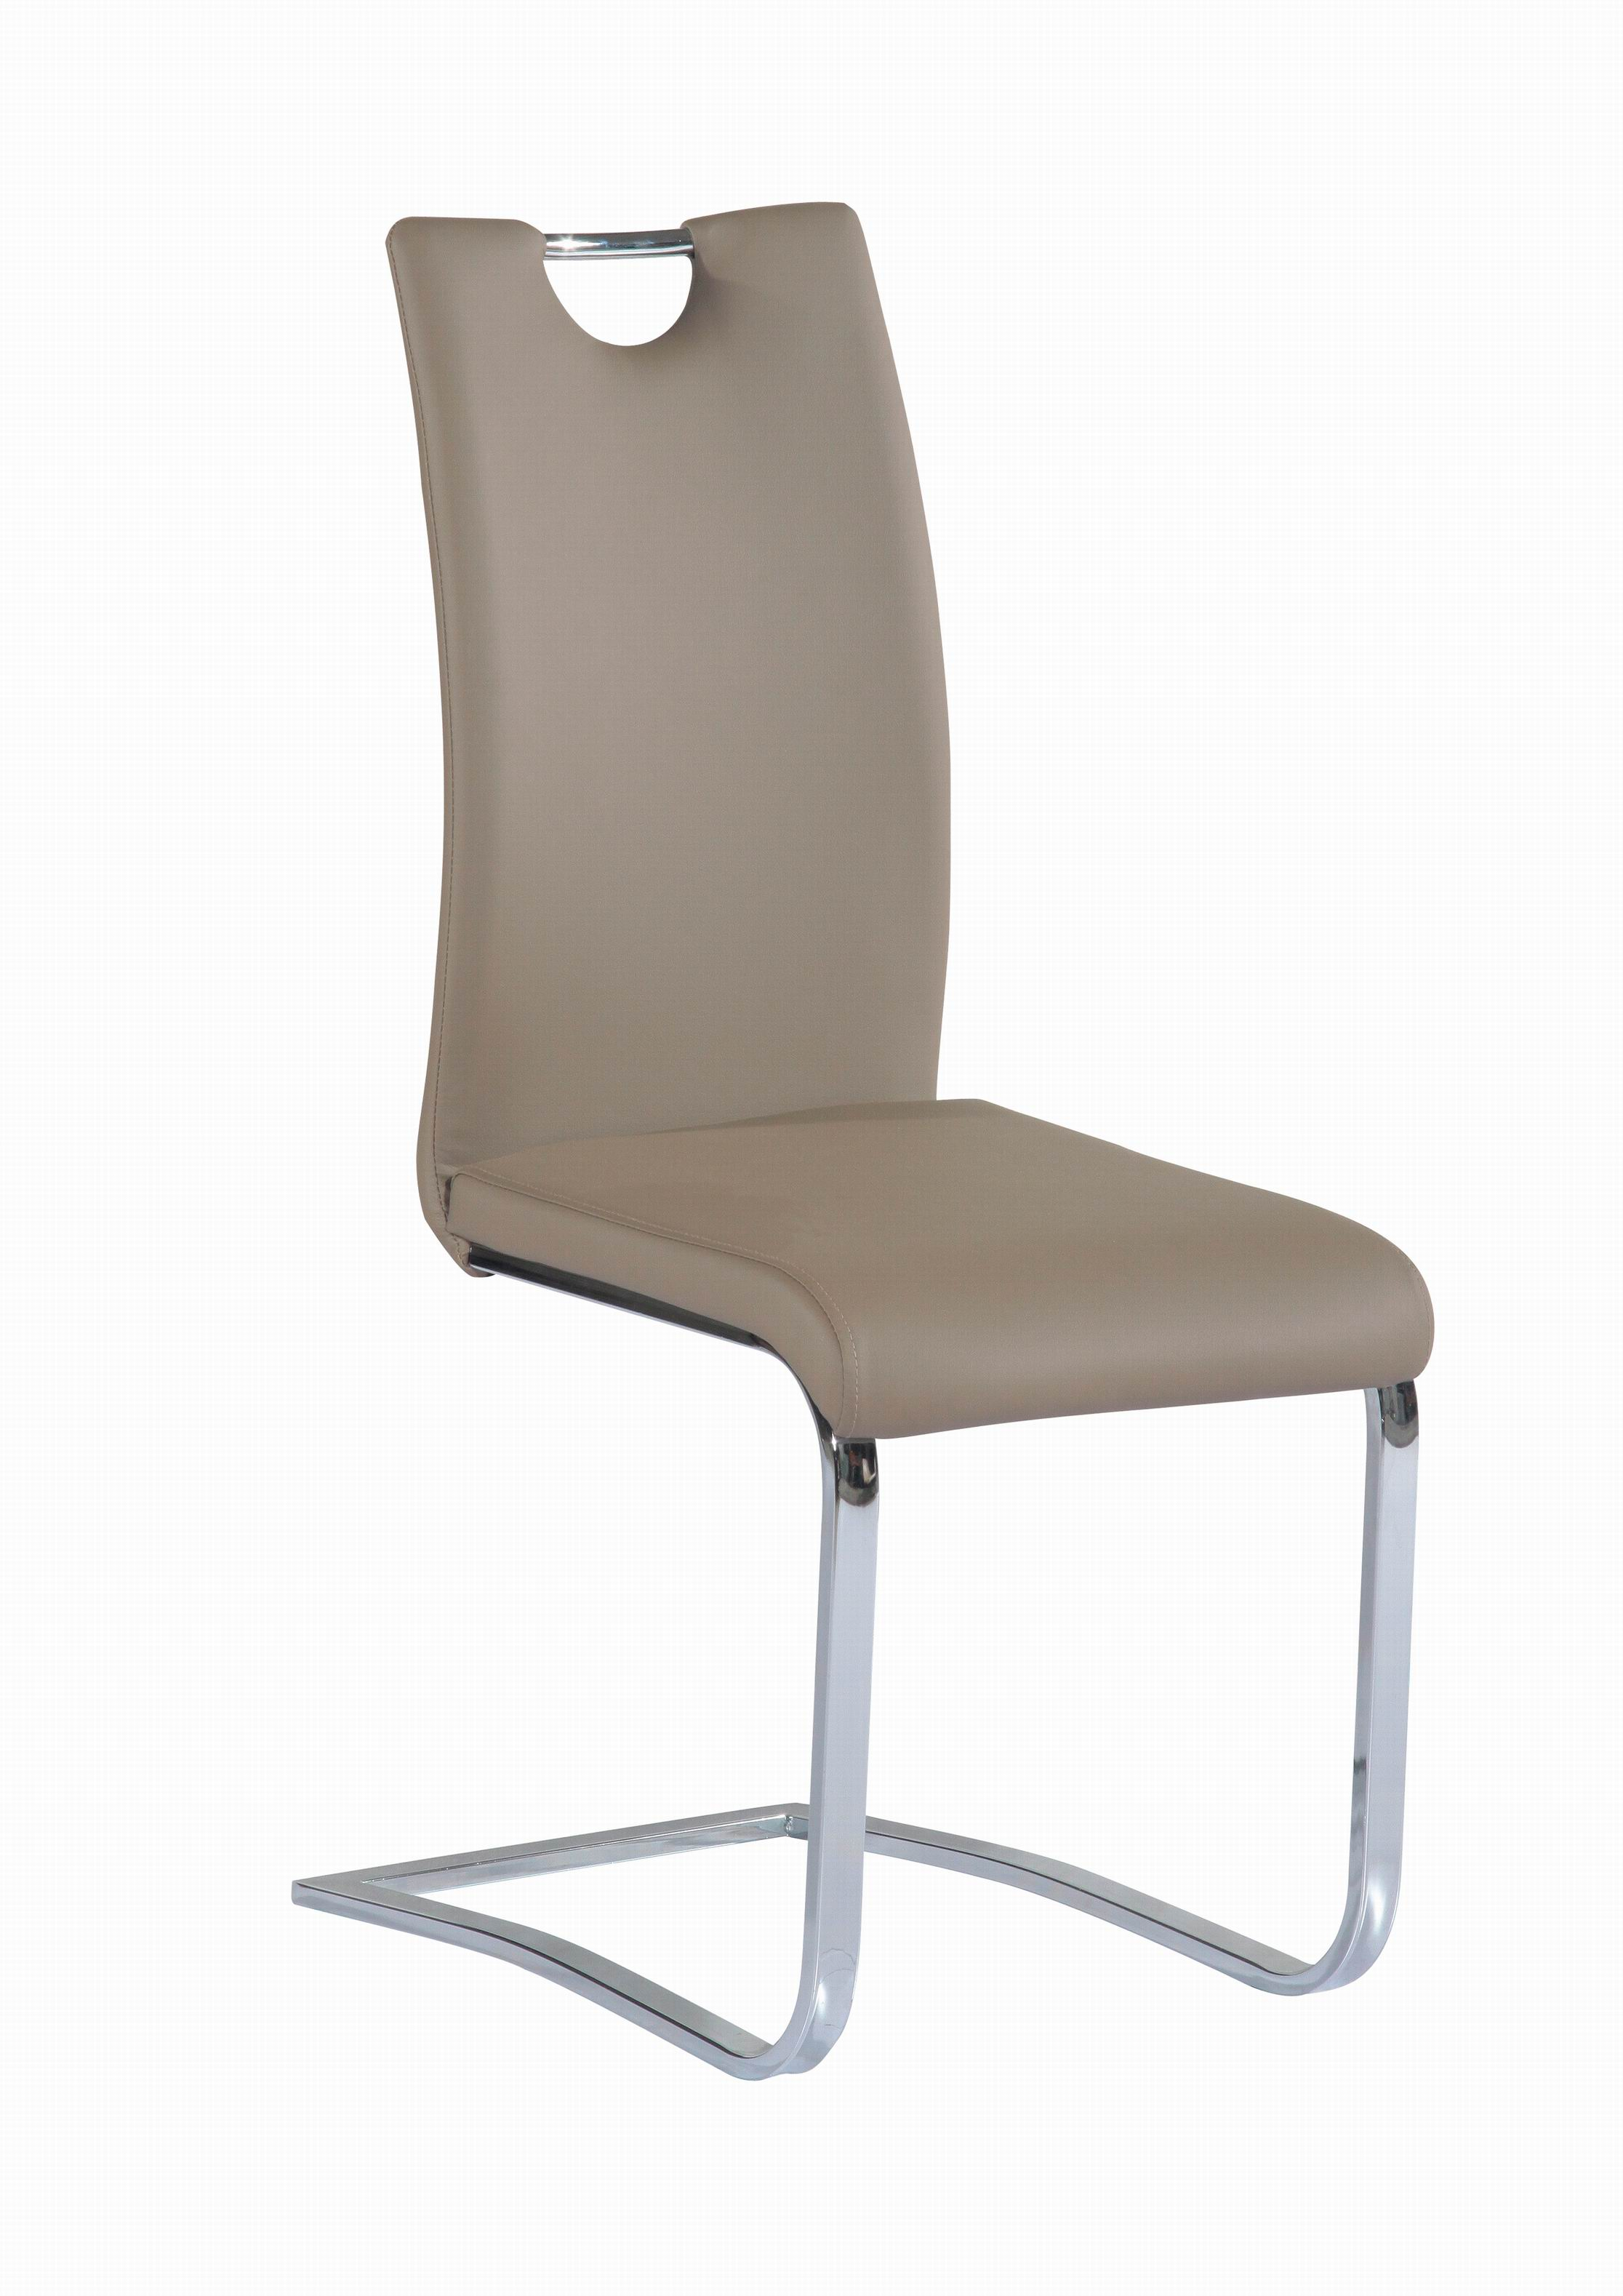 Taupe Dining Chairs Taupe Upholstered Side Chair With Chrome Frame And Handle